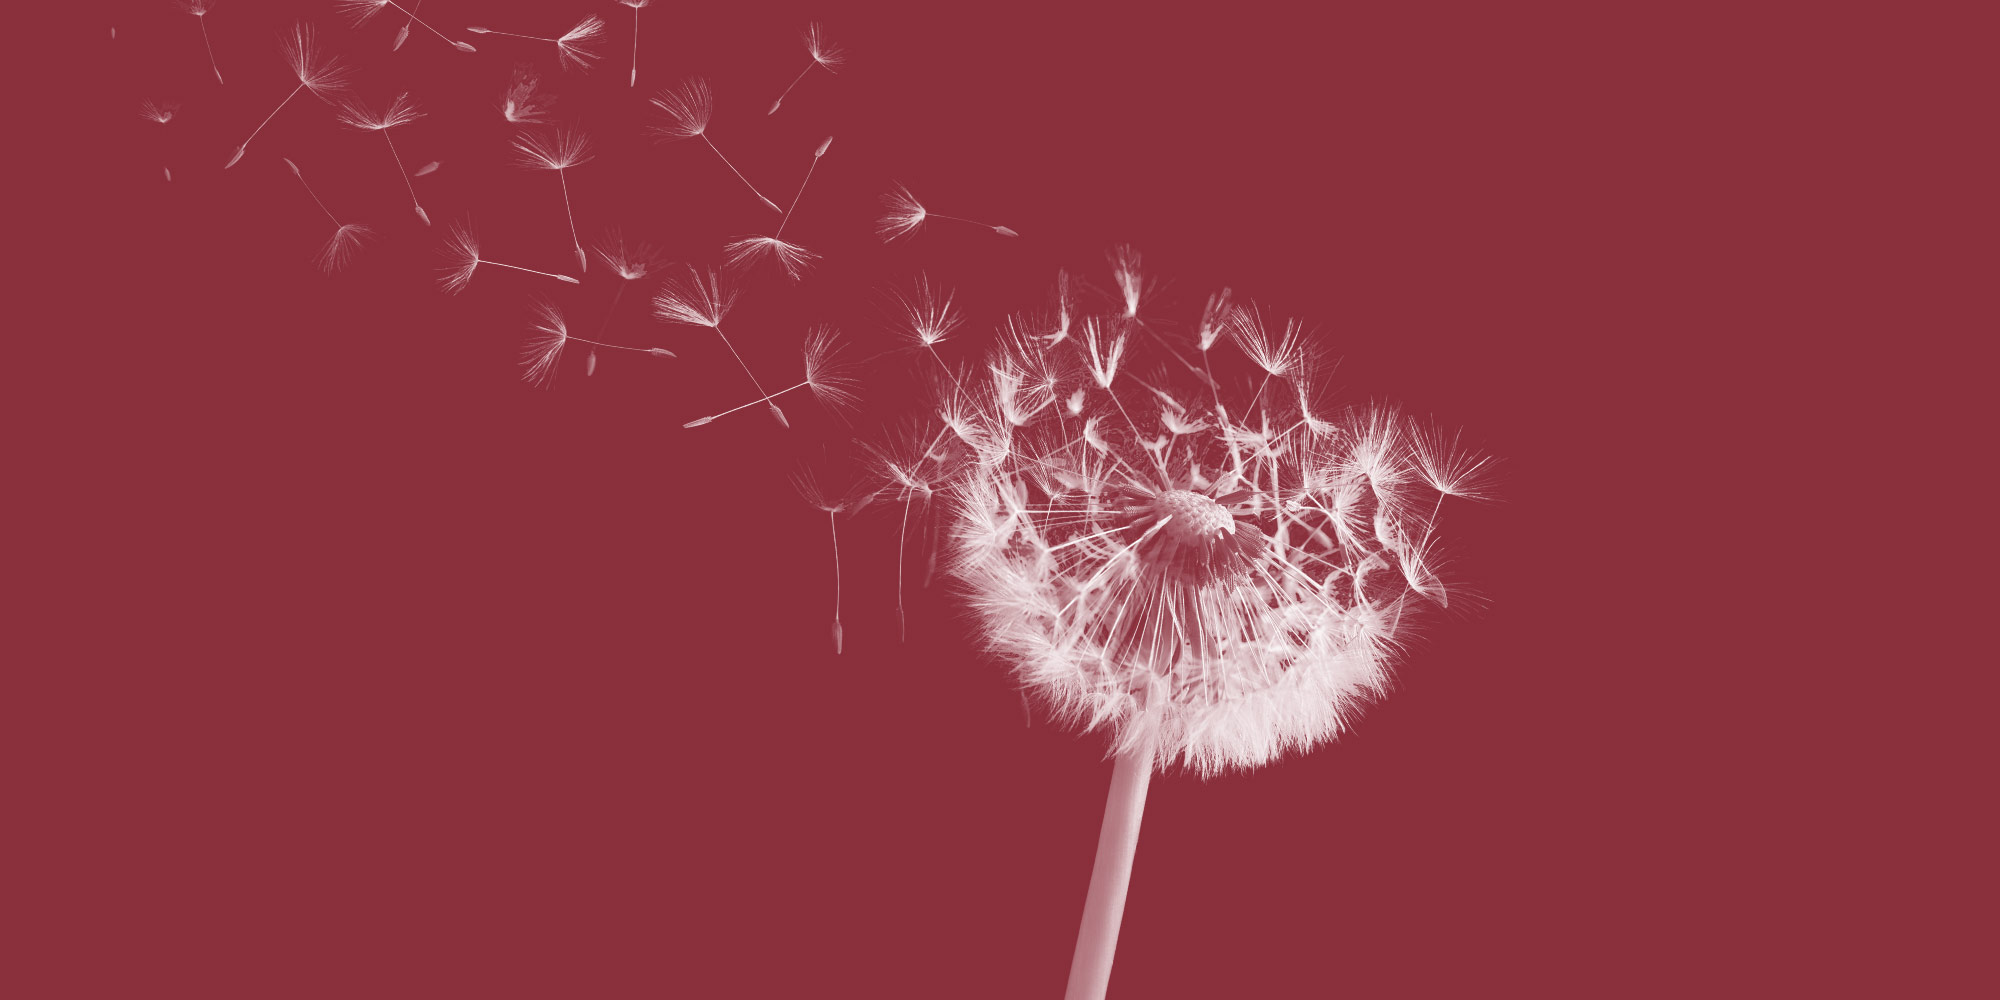 Dandelion fluff blowing. Changes in your first year sober